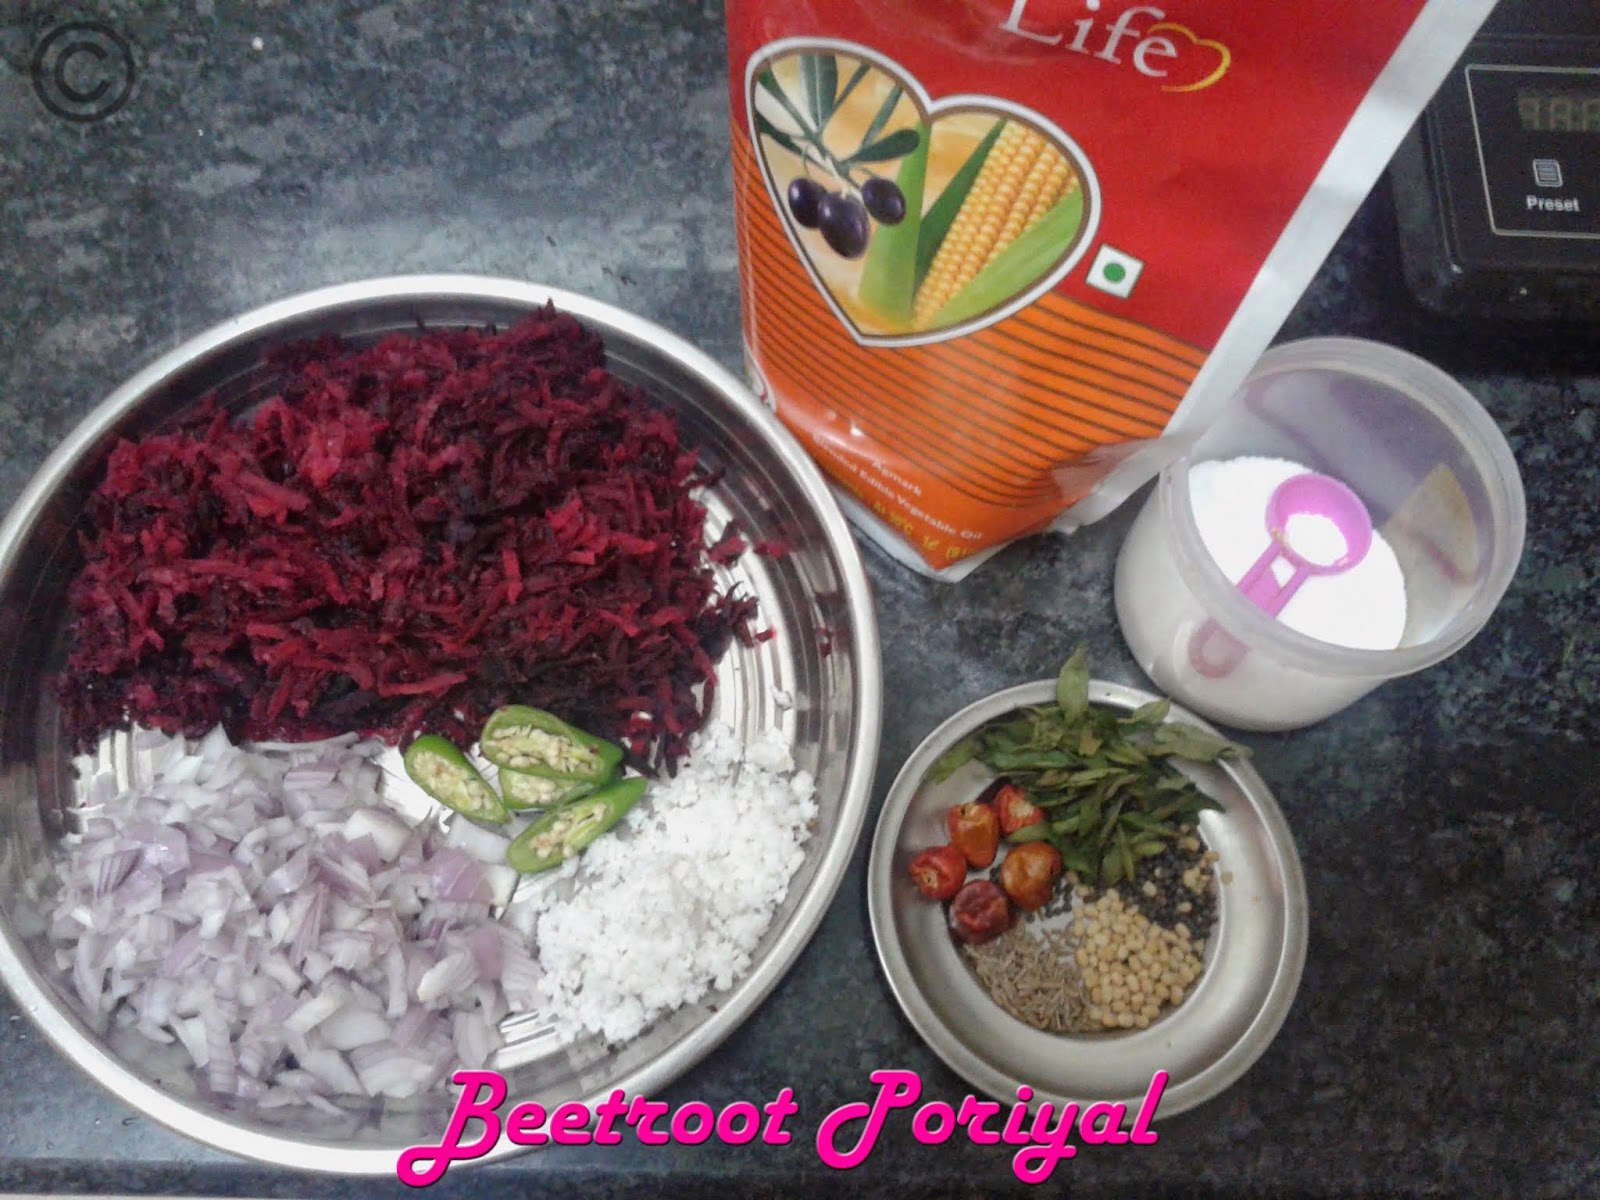 beetroot-stirfry